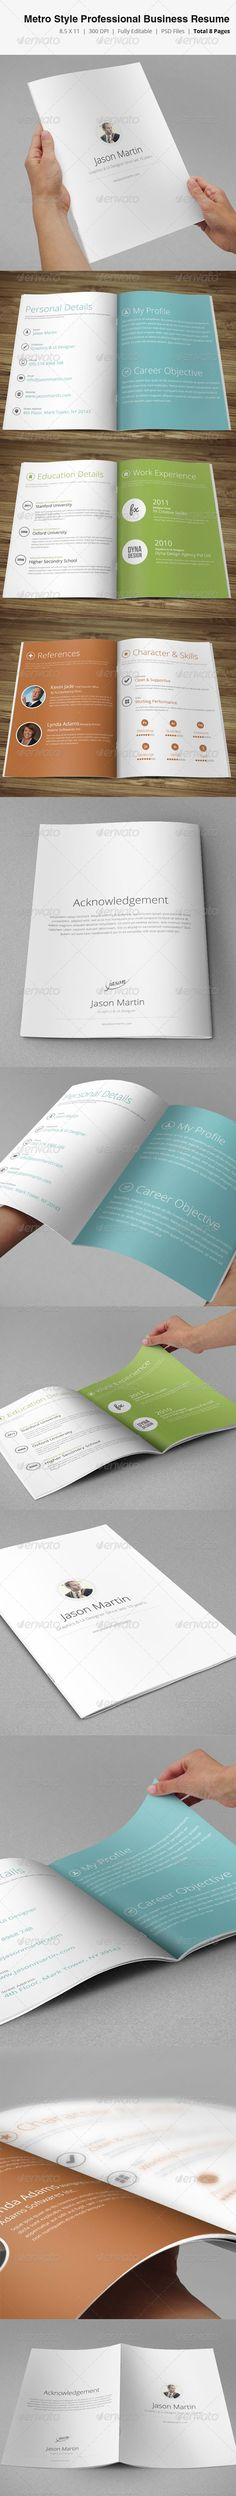 WOW, I would hire myself with this resume! Metro Style Professional Business Resume $ 11